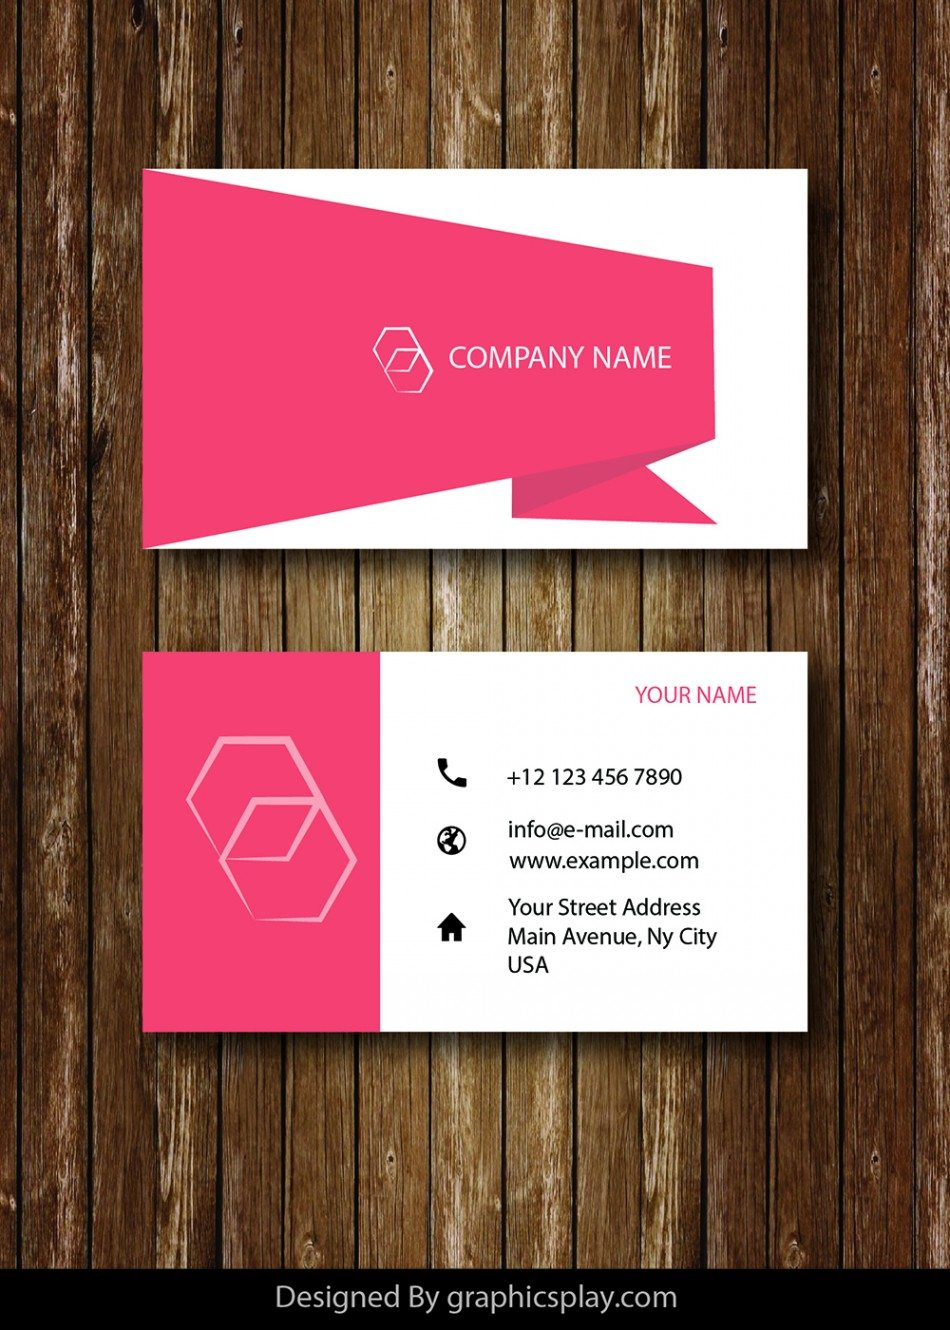 Business Card Design Vector Template - ID 1689 1